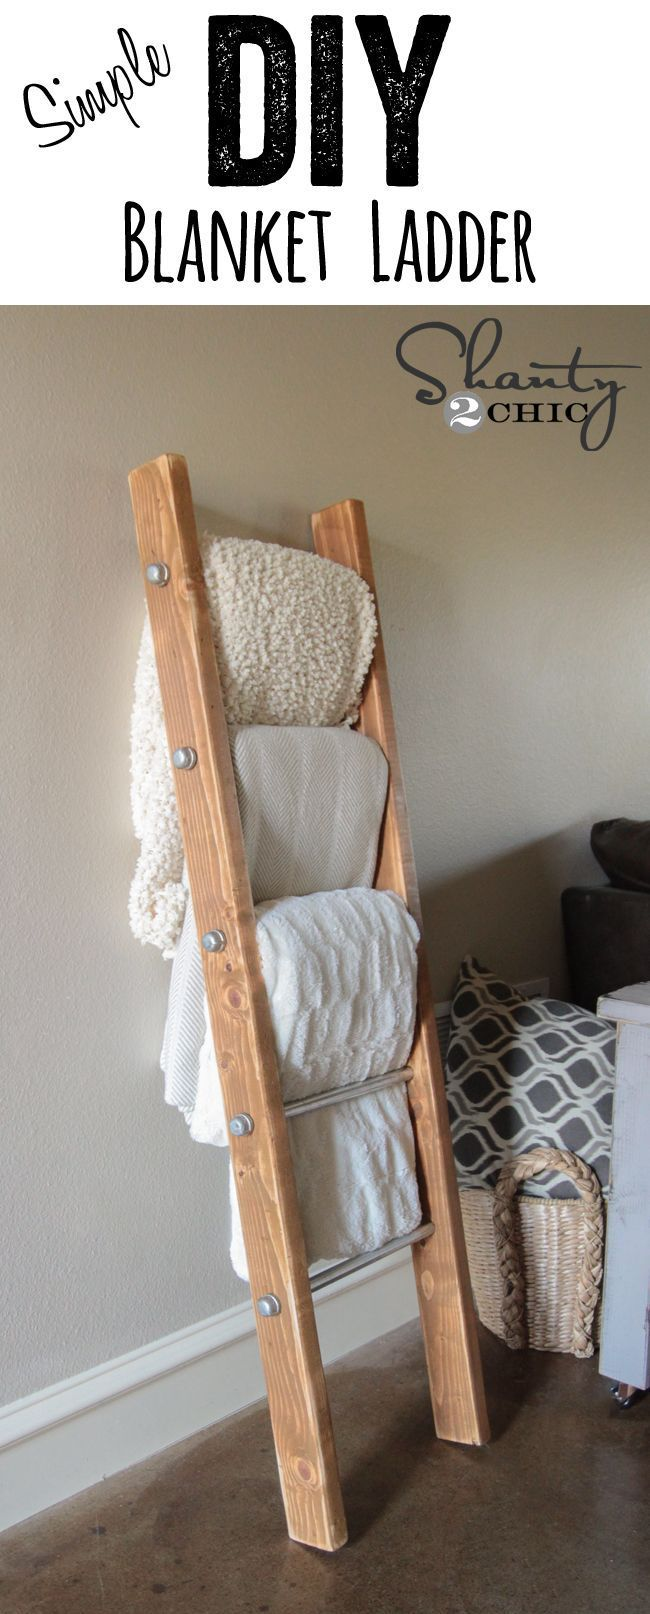 DIY Wood and Metal Pipe Blanket Ladder Seriously SO simple and so cute! www.shanty-2-chic.com